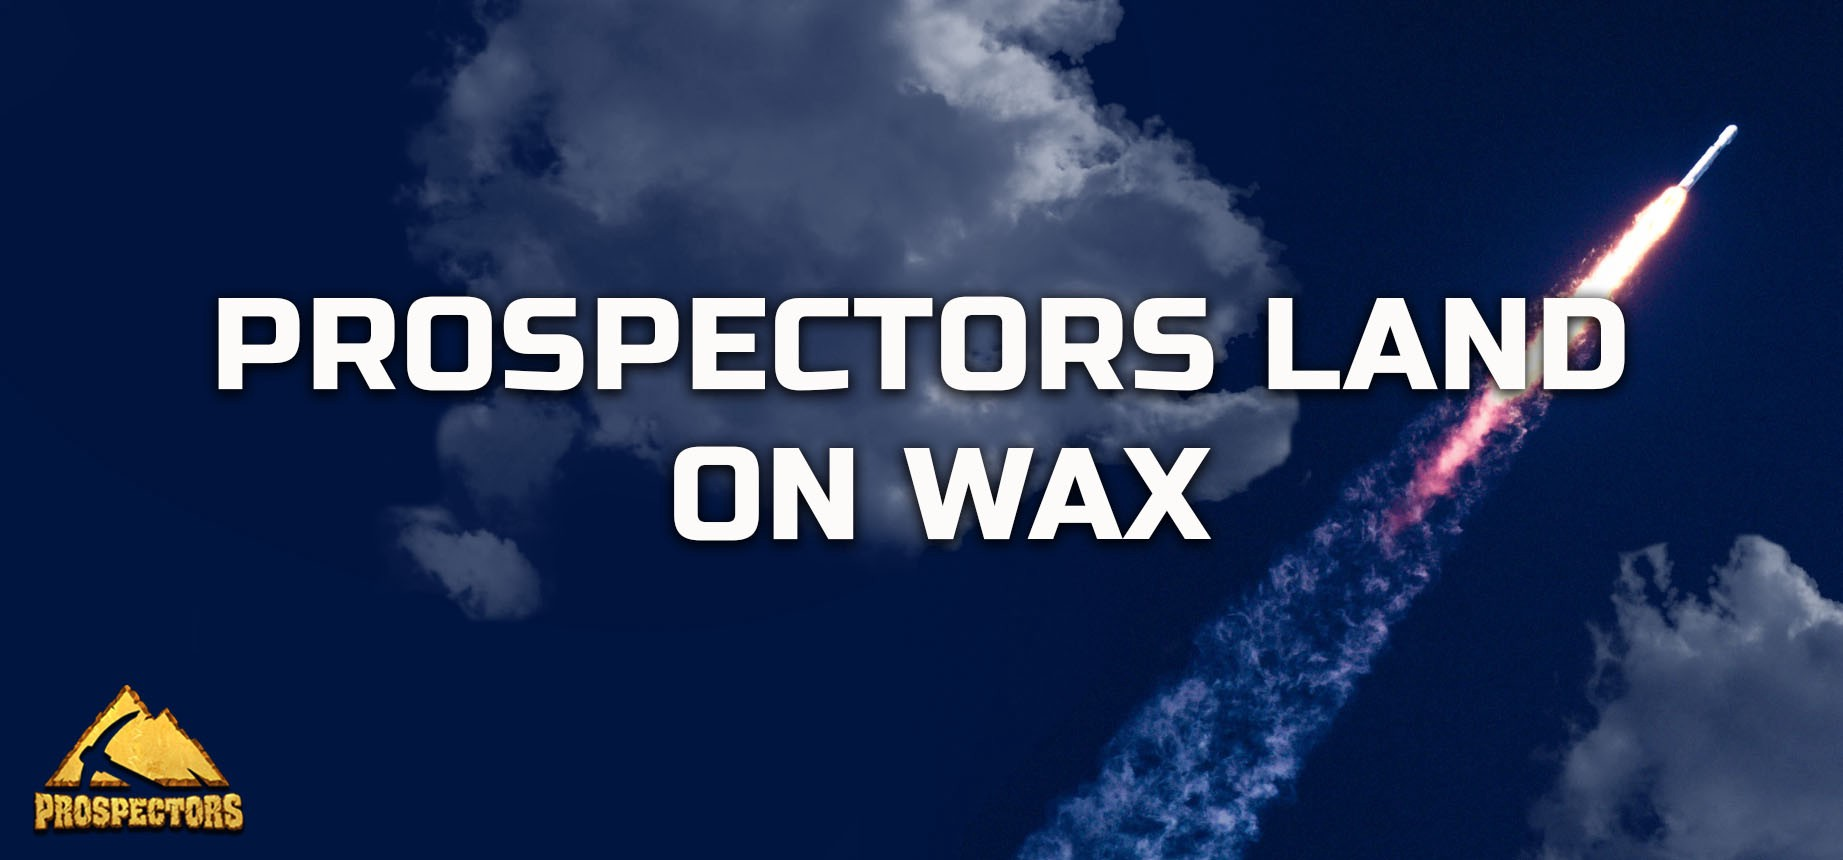 Prospectors land on WAX